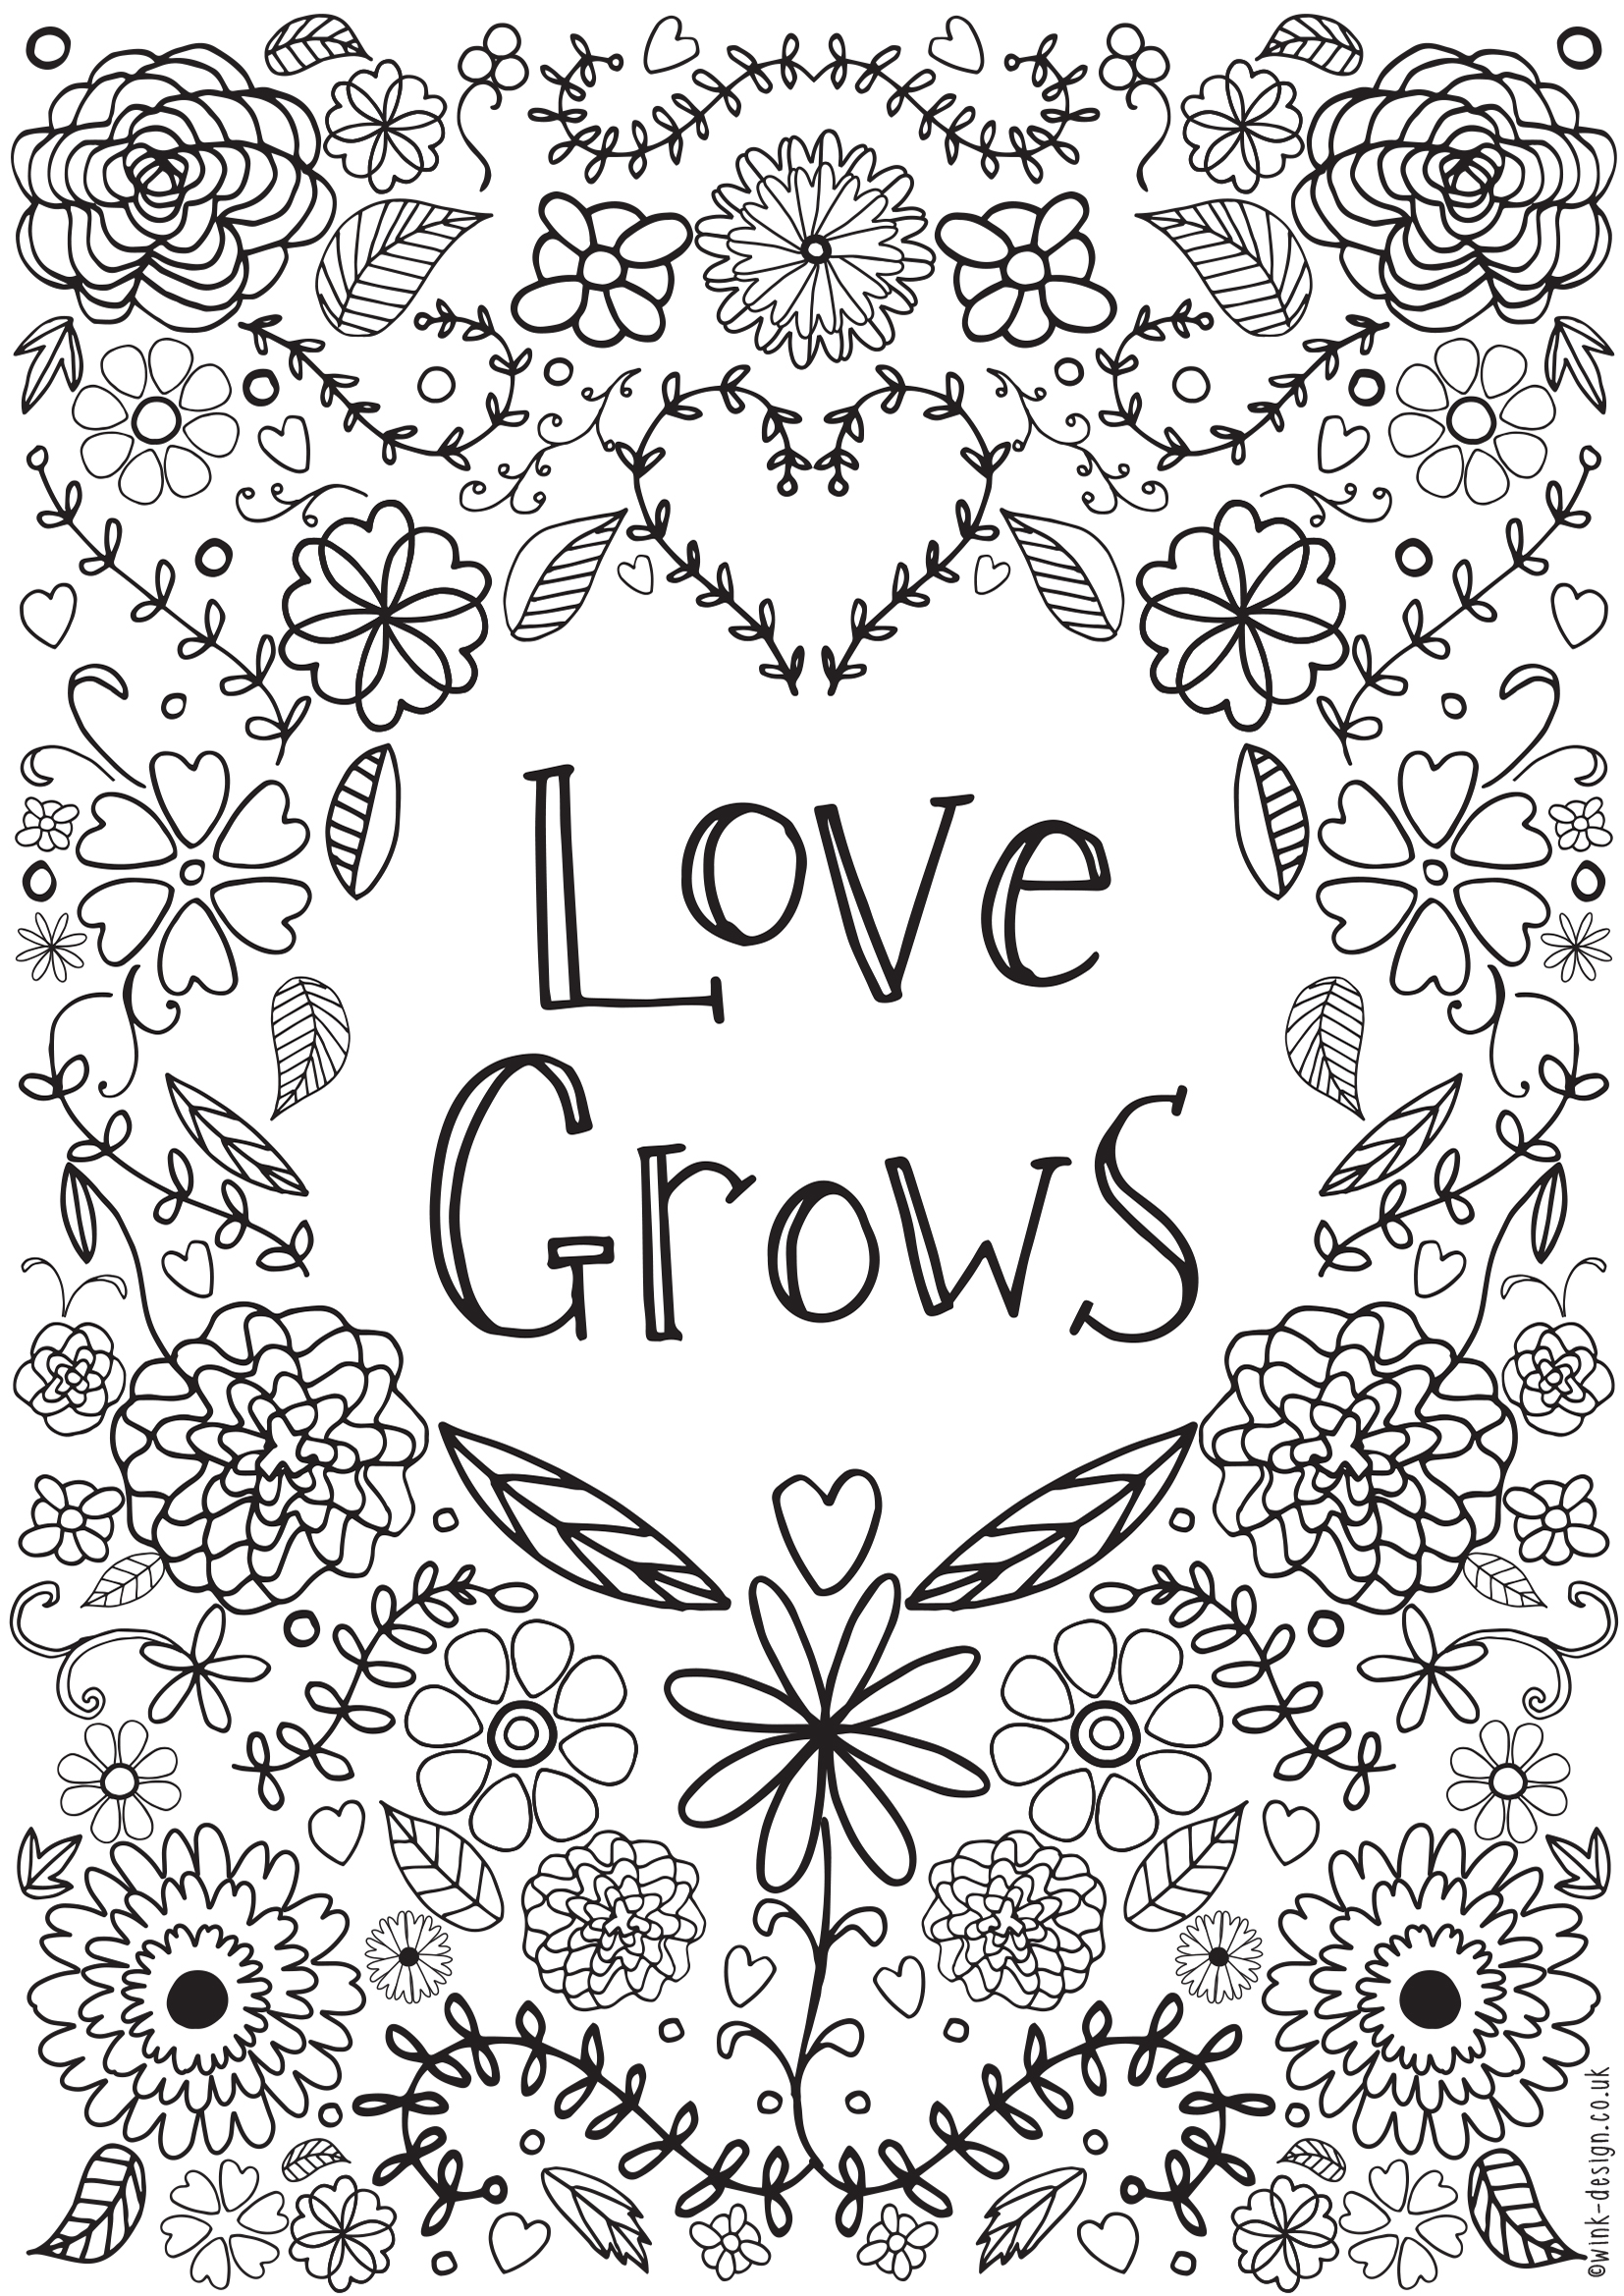 Love grows colouring page